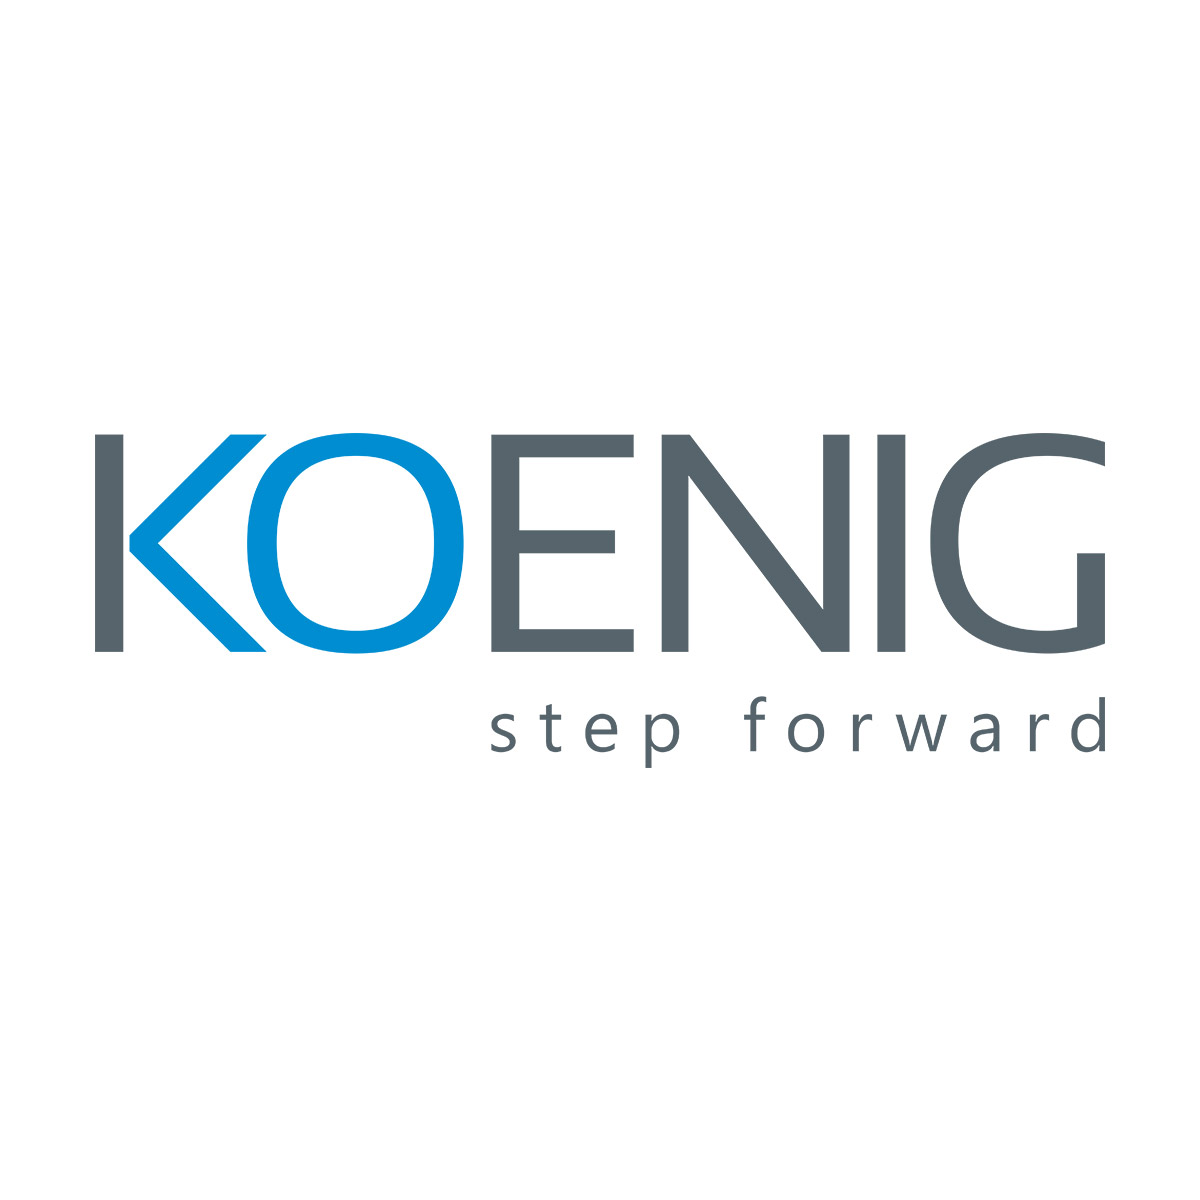 Koenig Solutions Pvt. Ltd.